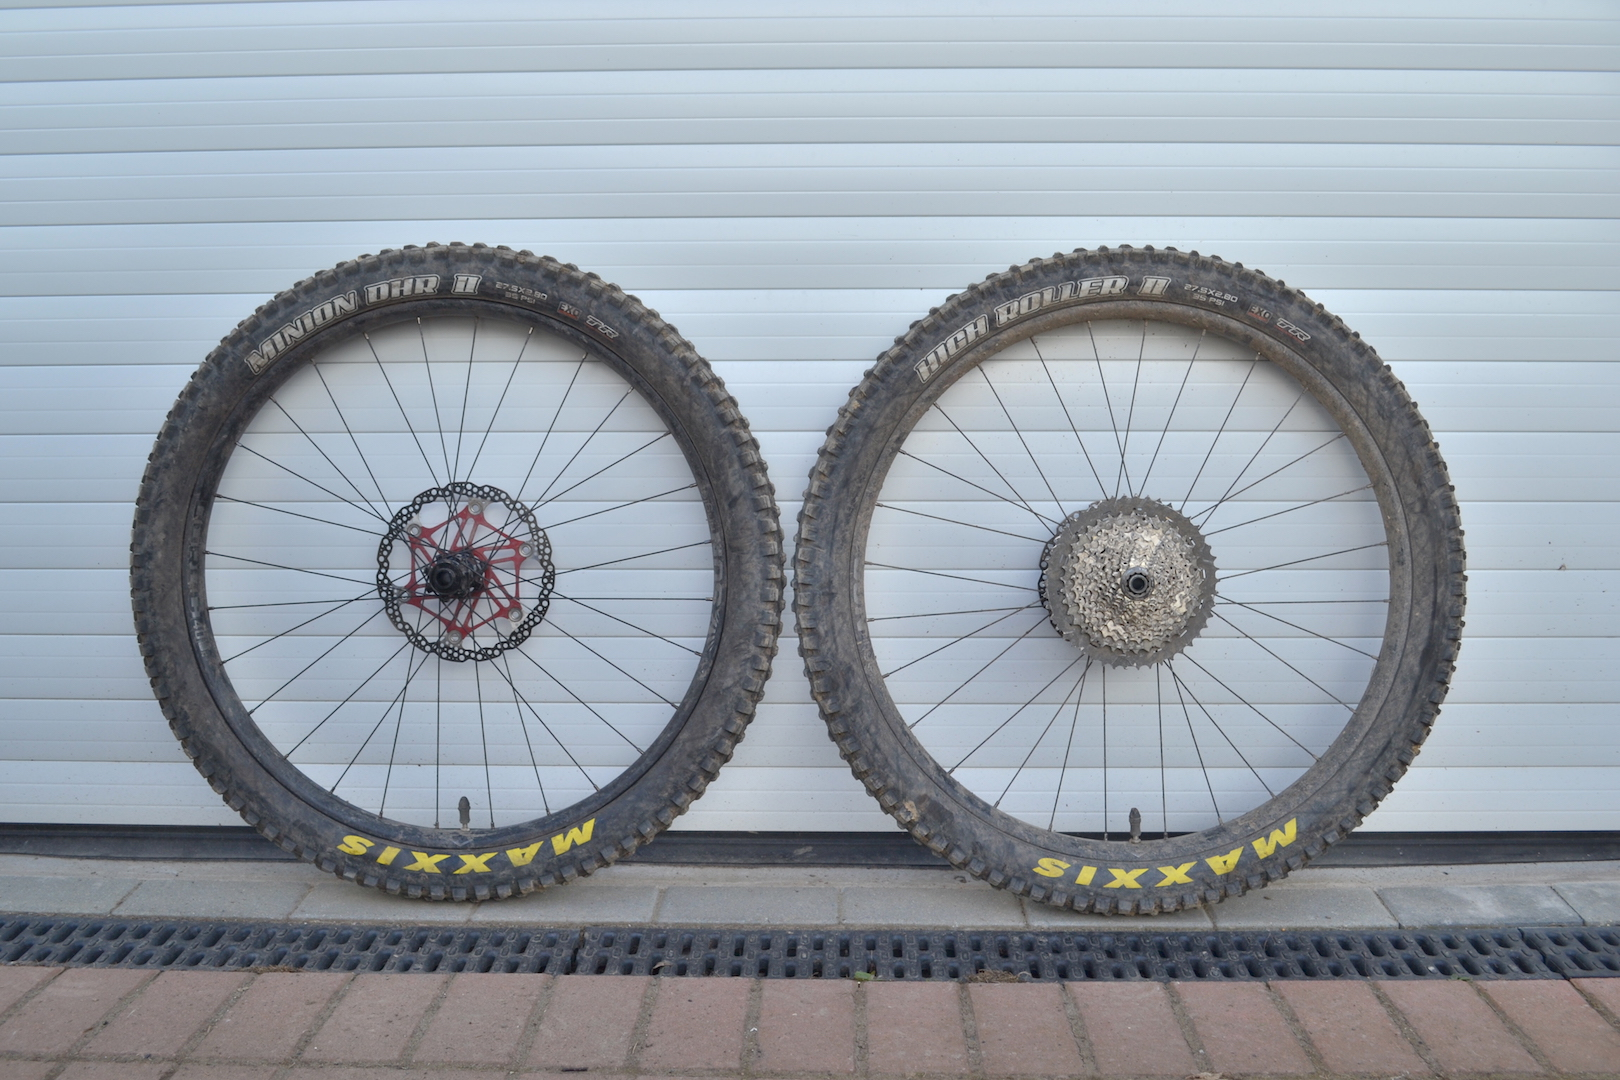 sun ringle duroc 40 plus wheels maxxis tyres 2.8in